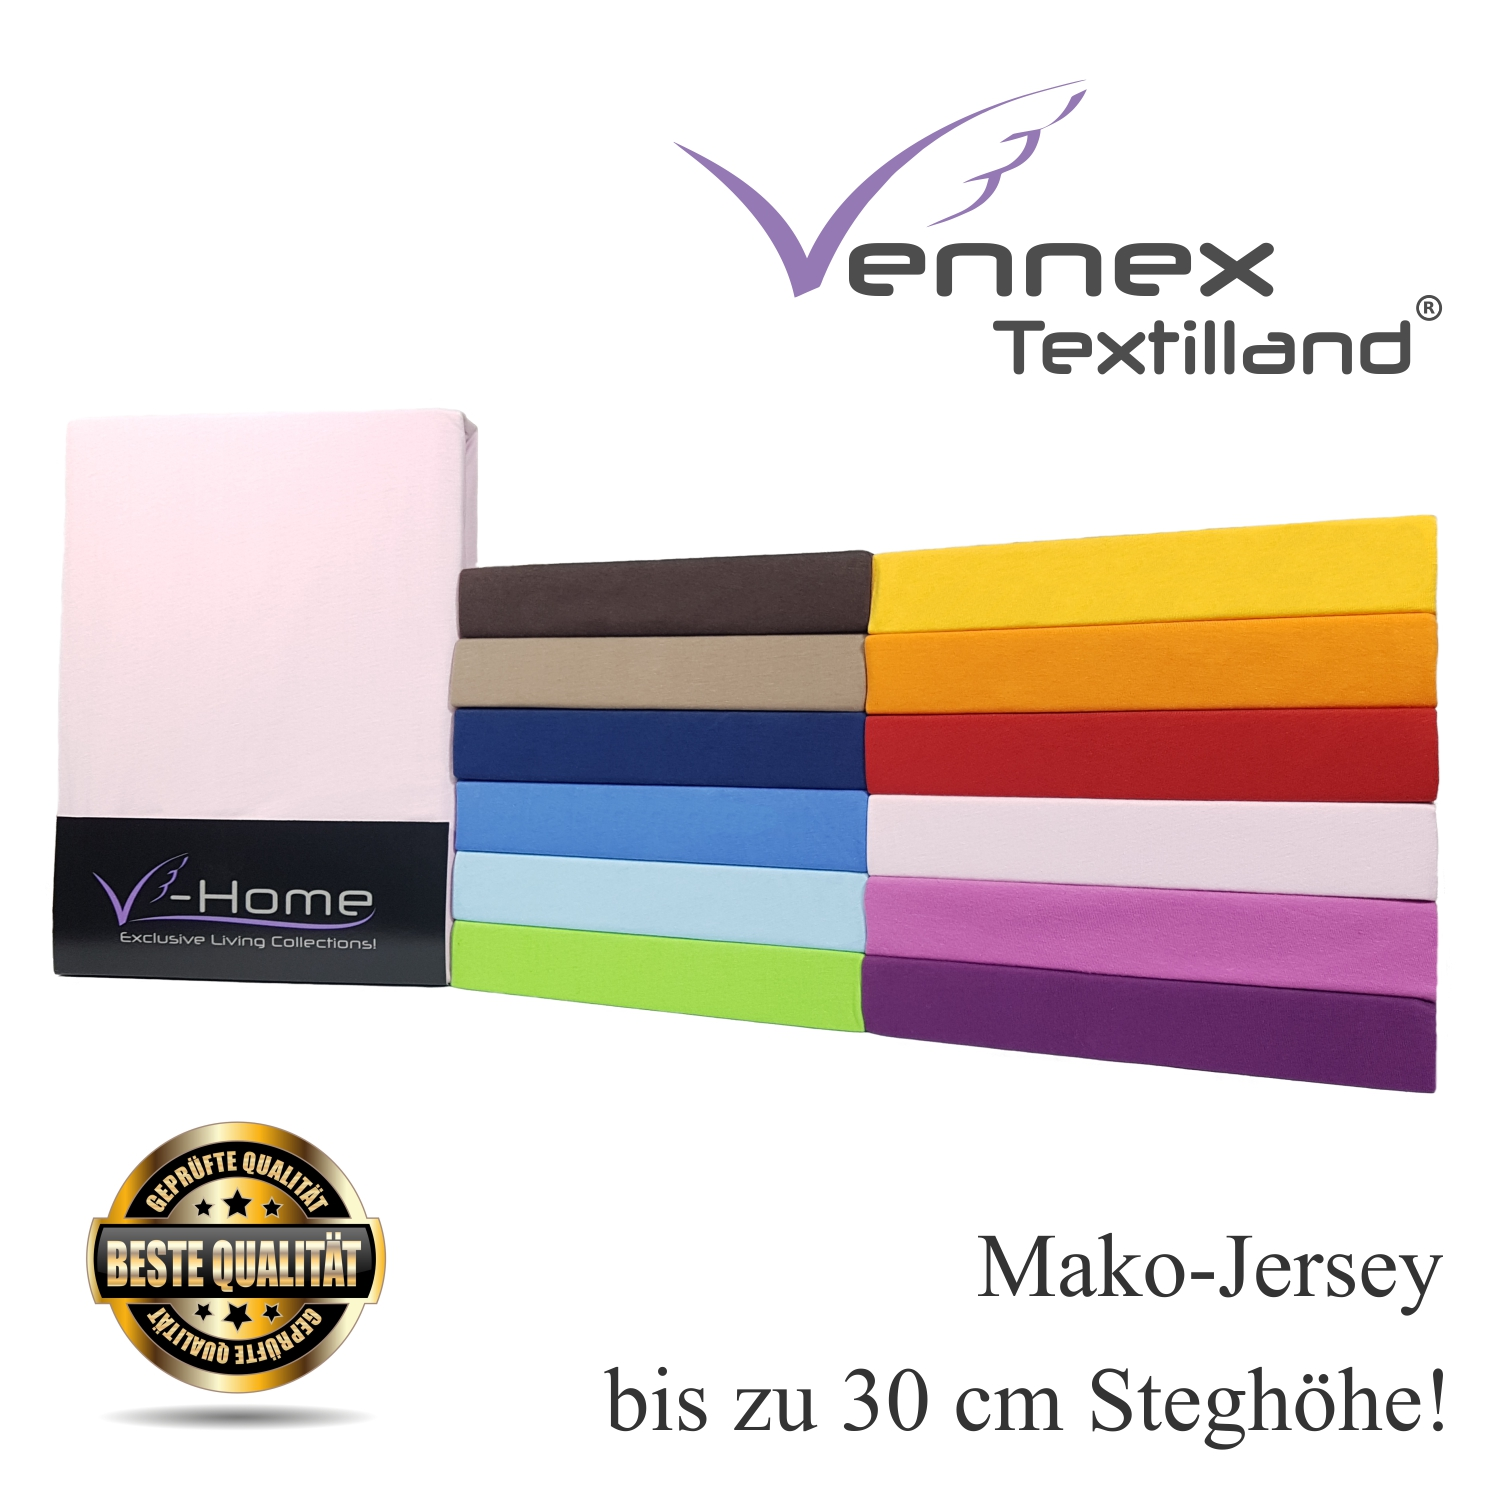 mako jersey spannbettlaken v home high class vennex textilland gmbh. Black Bedroom Furniture Sets. Home Design Ideas